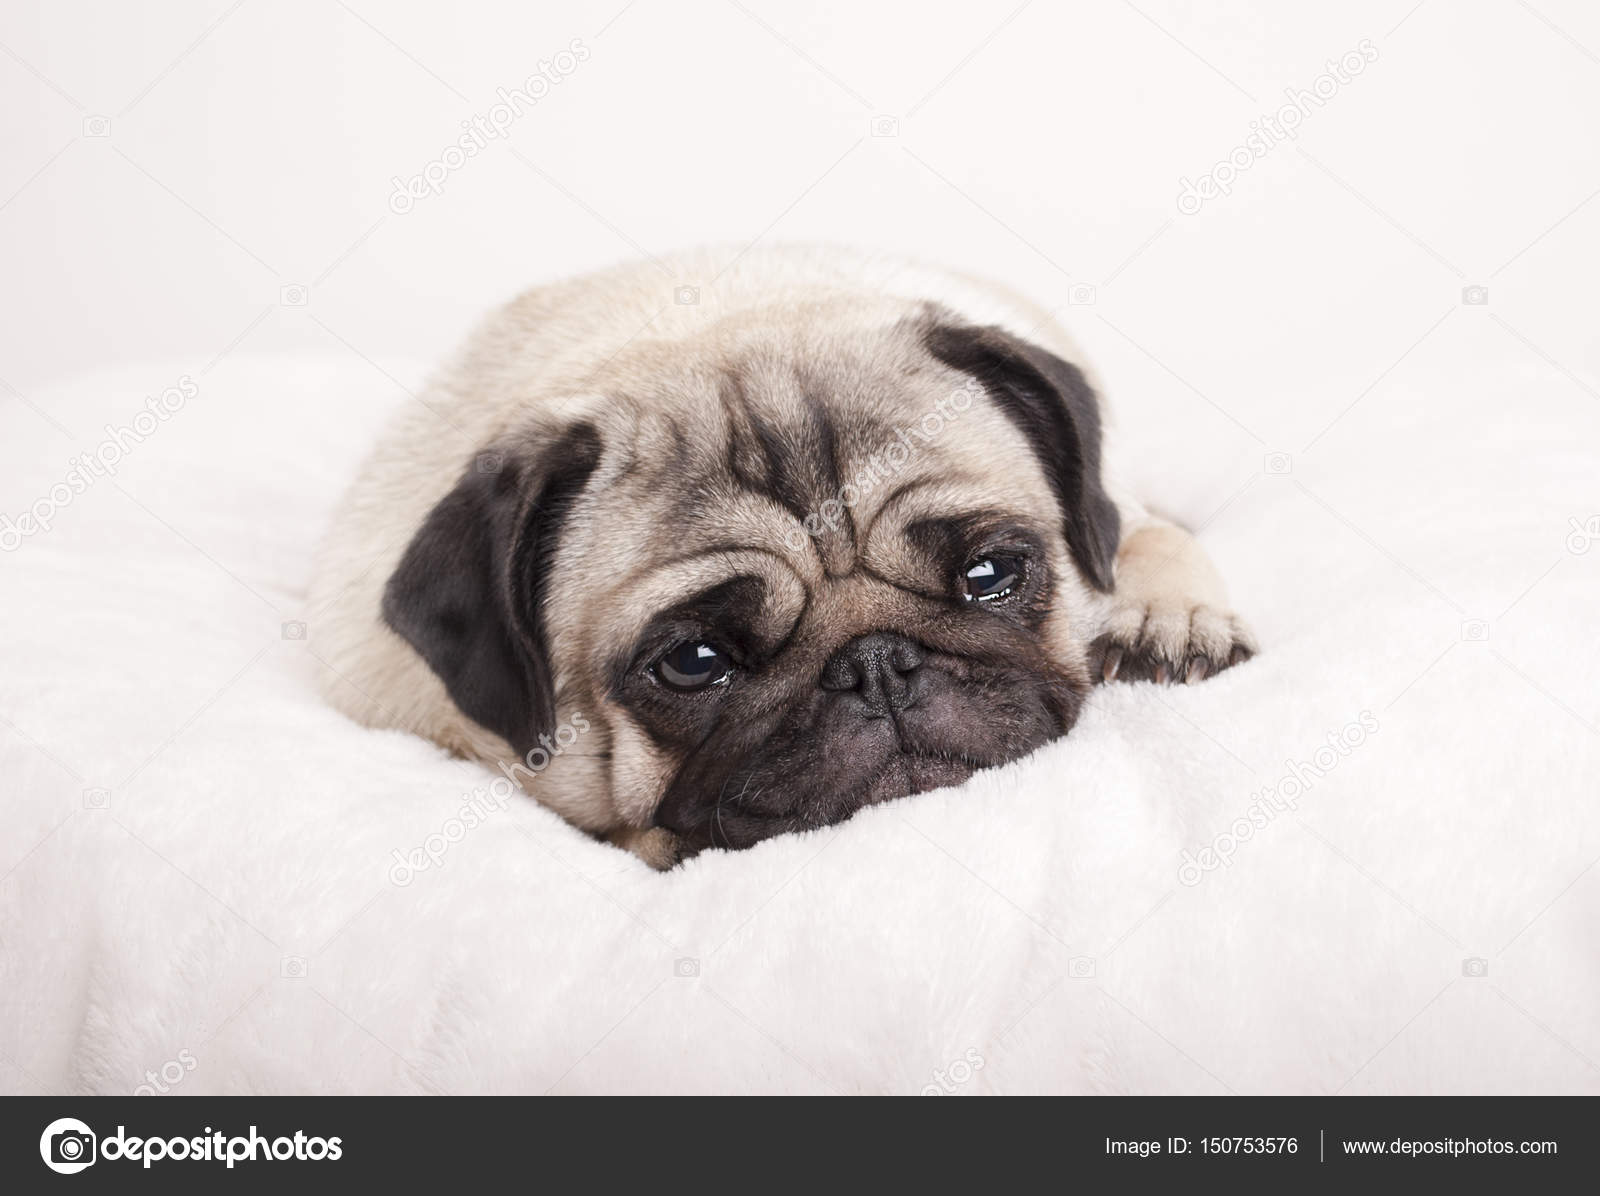 Lovely Sad Little Pug Puppy Dog Lying Down Crying On Fuzzy Blanket